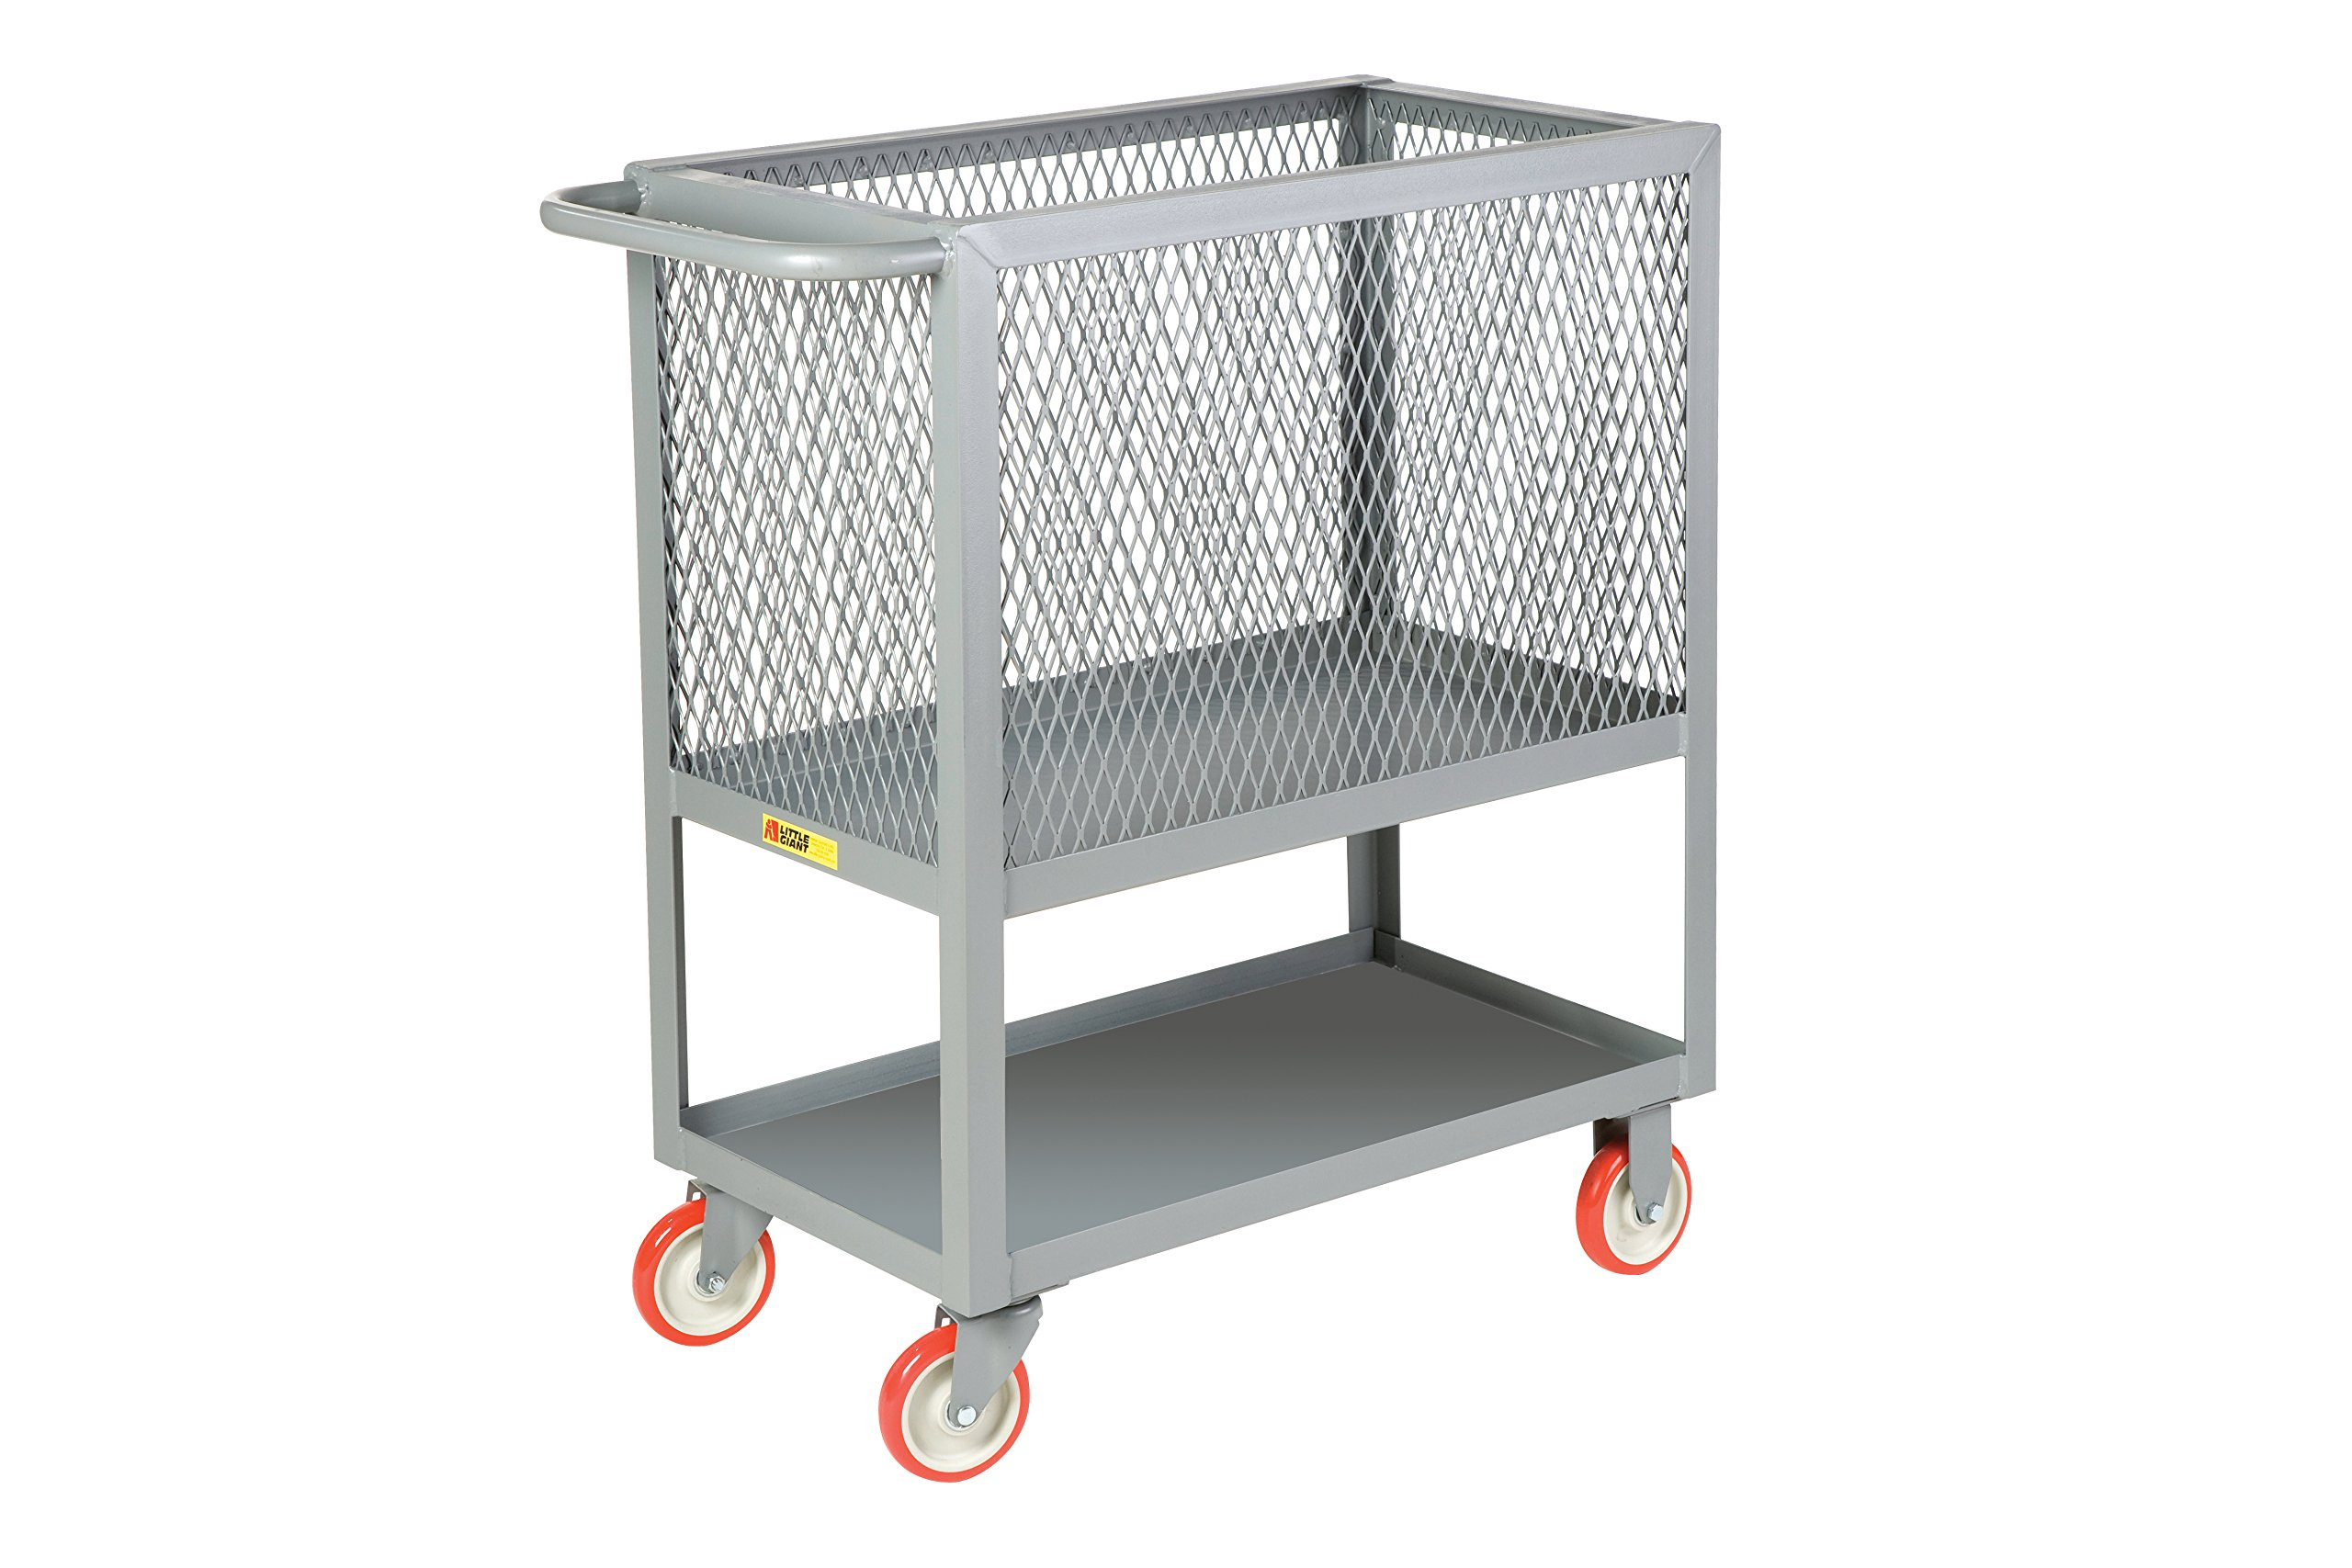 Little Giant 2RP4X-2448-5PY Raised Platform Box Trucks with Lower Shelf, 4 Mesh Sides, 1200 lb. Capacity, 5'' Polyurethane, 53.5'' Length, 24'' Width, 40'' Height